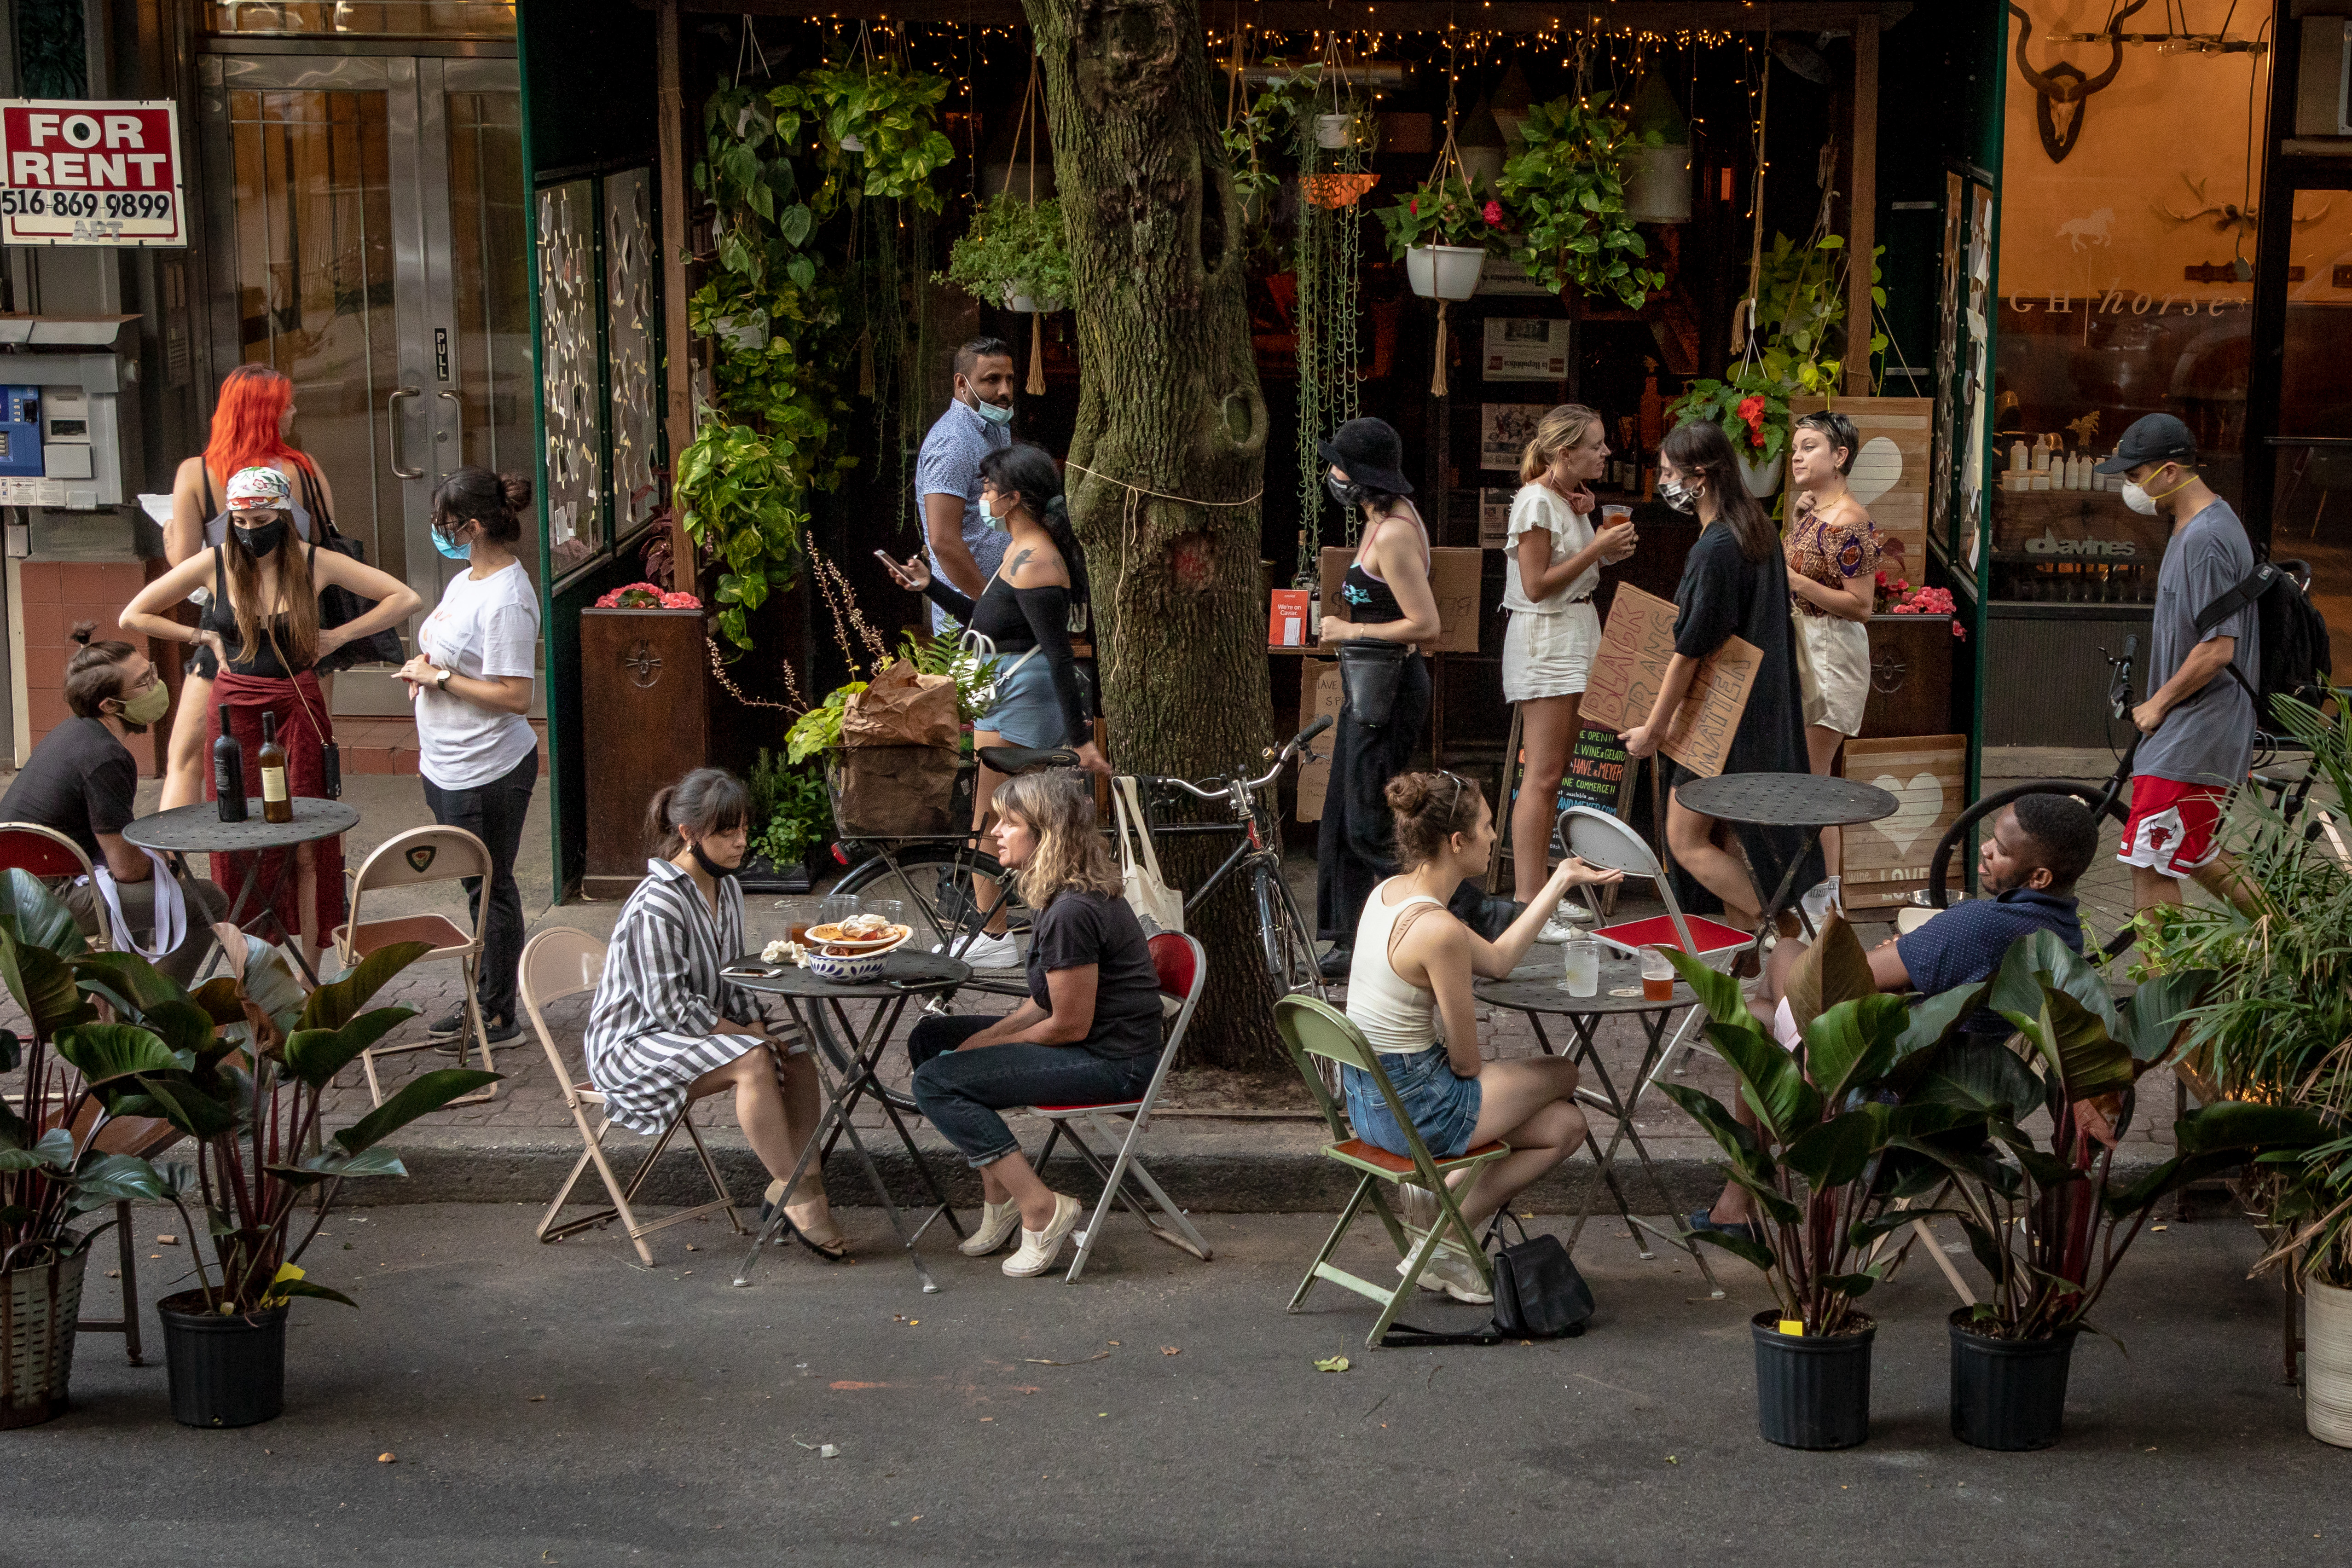 Customers dine at curbside tables